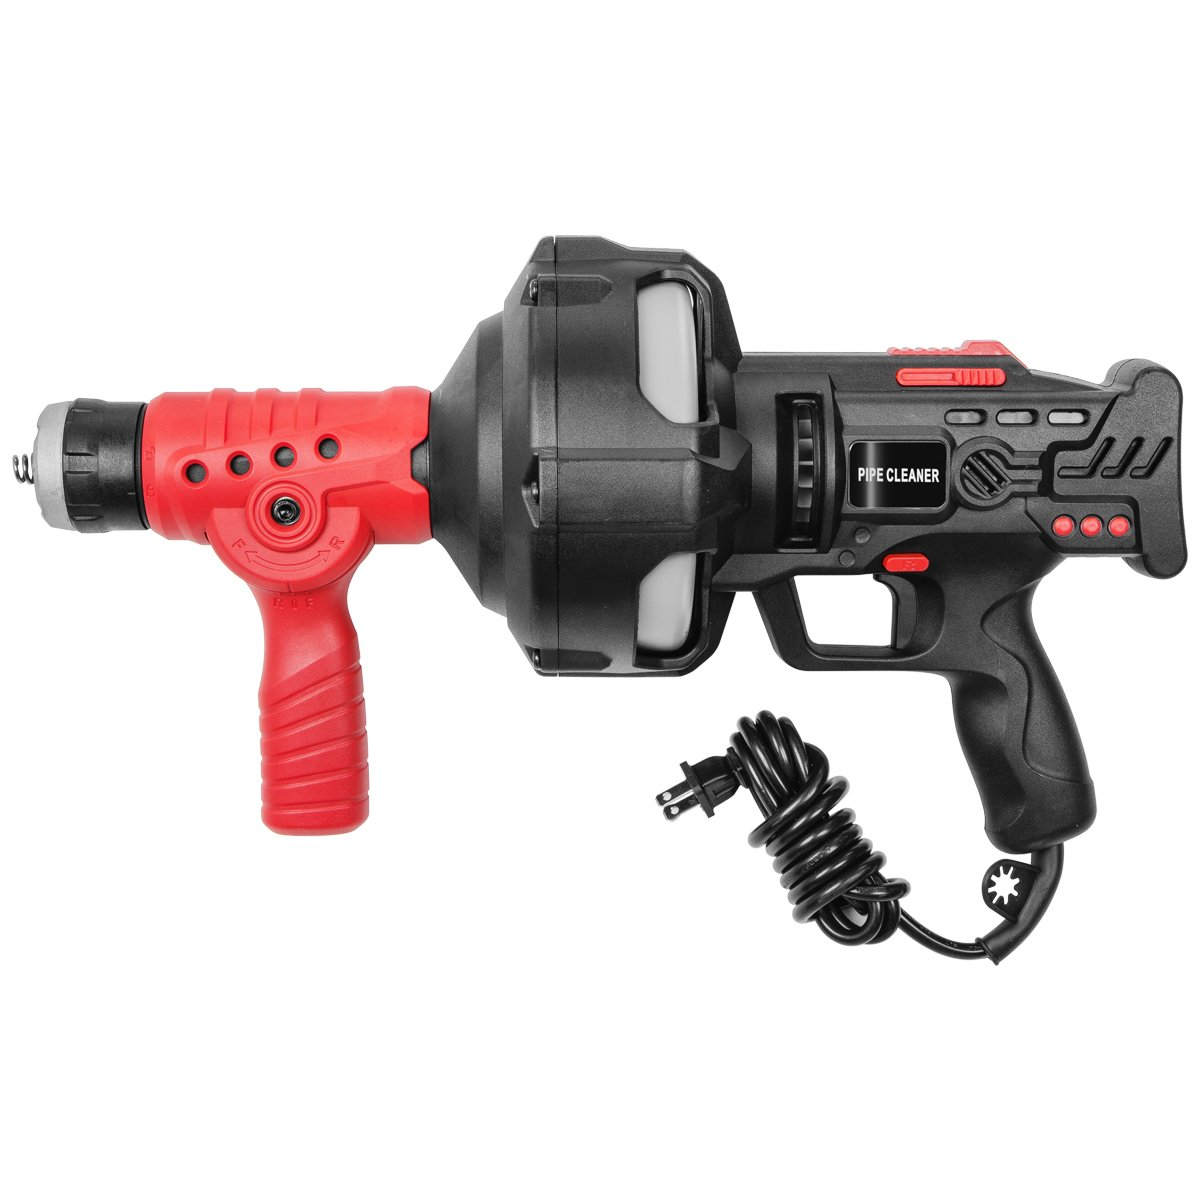 STKUSA 25' Handheld Portable Drain Auger Corded Operated Snake Sink Clog Pipe Cleaner Plumbing Power Tool